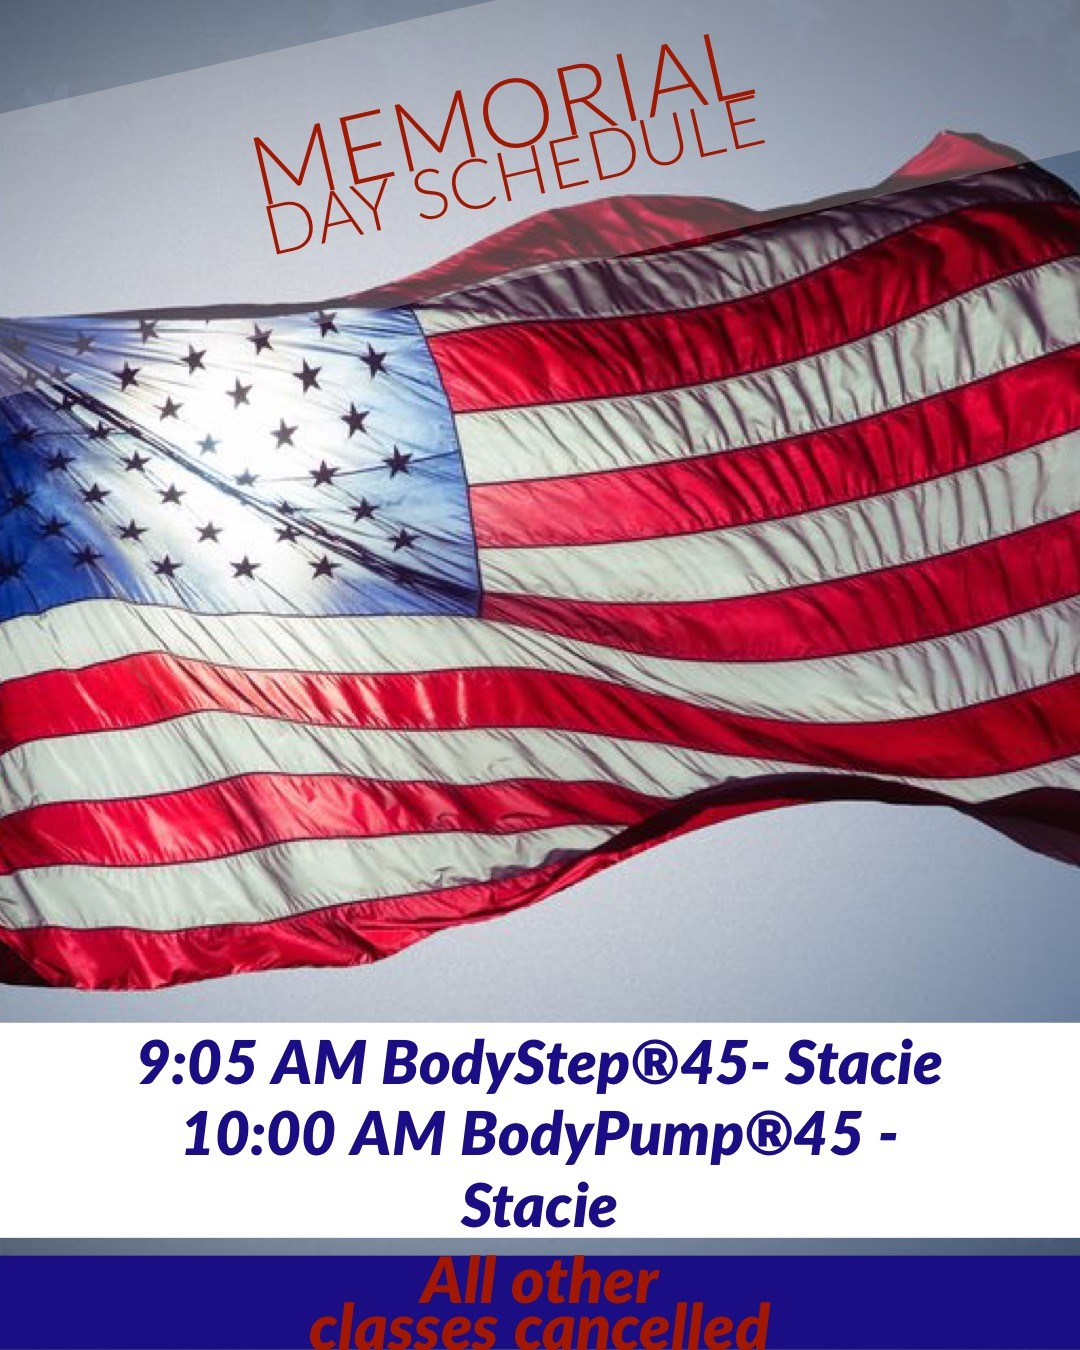 memorial day group fitness schedule gold's gym mechanicsville